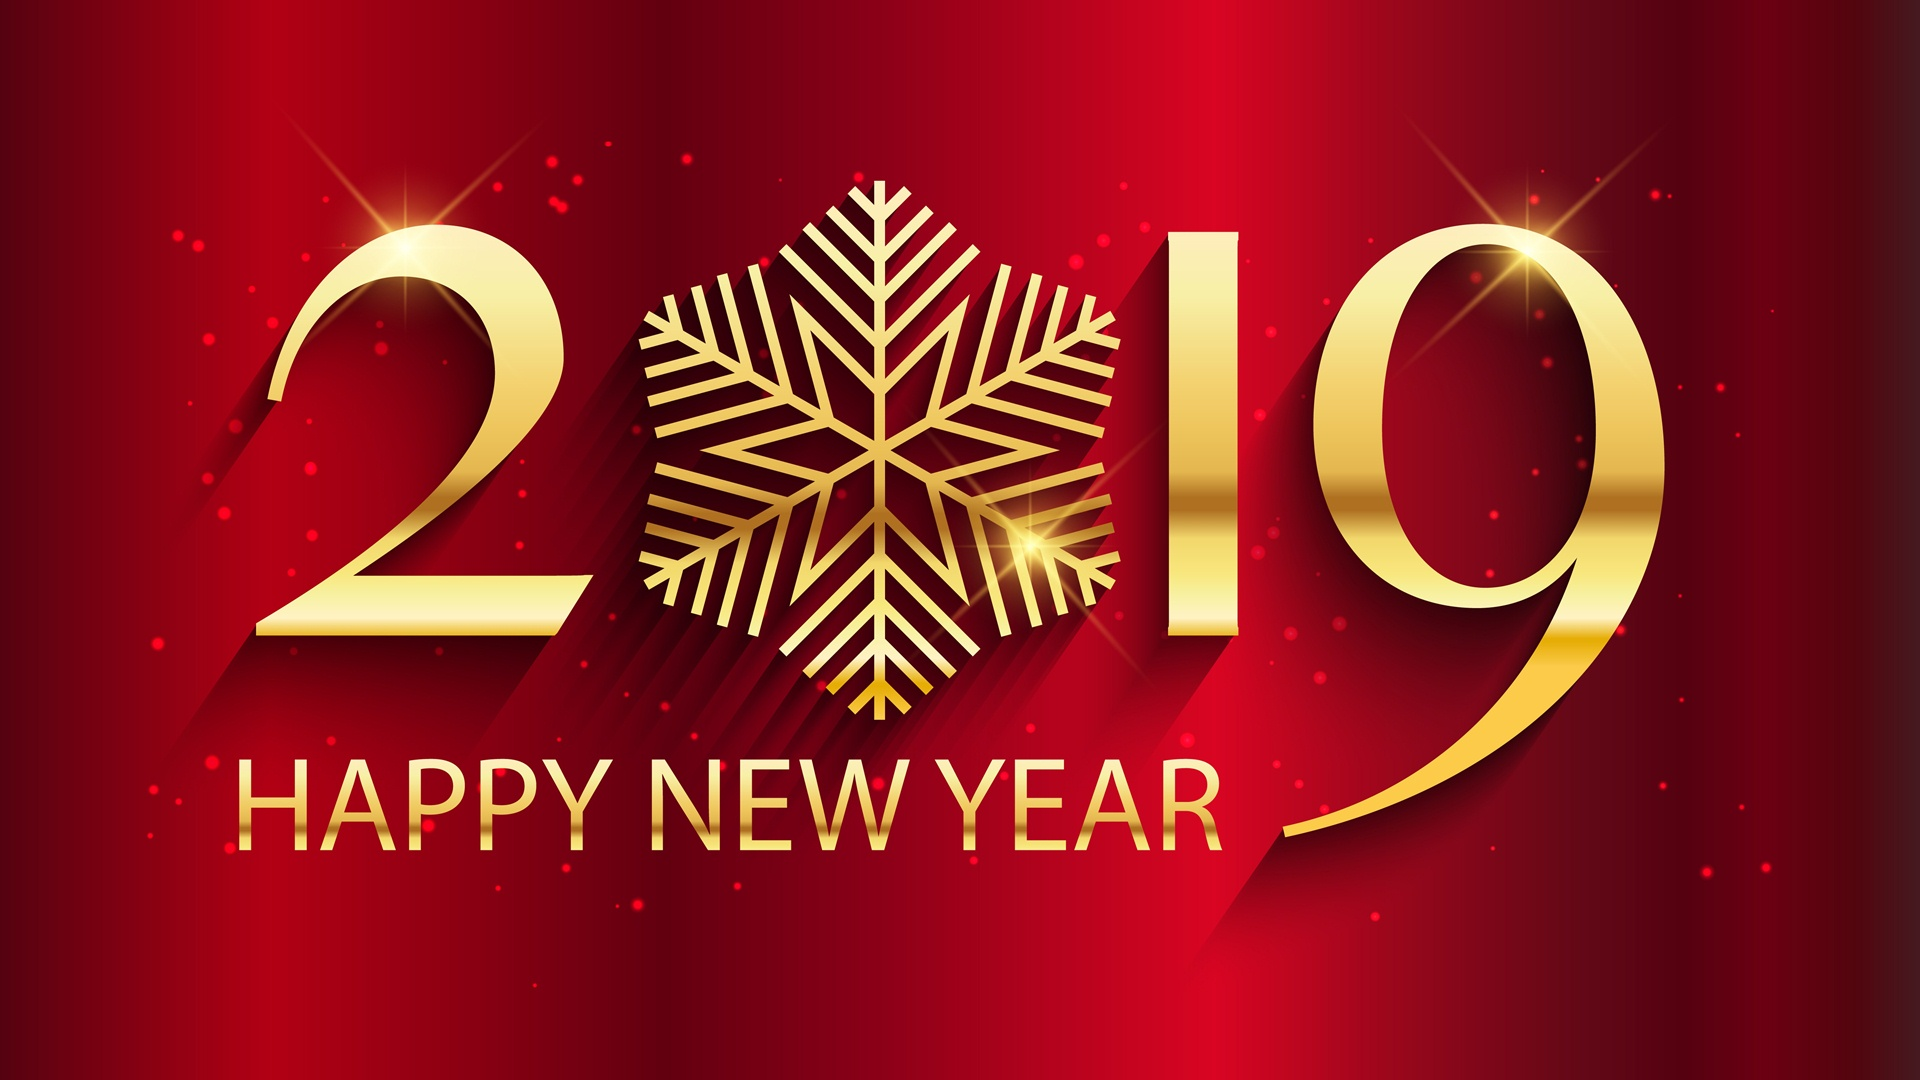 2019 Happy New Year Wallpaper HD 1920x1080